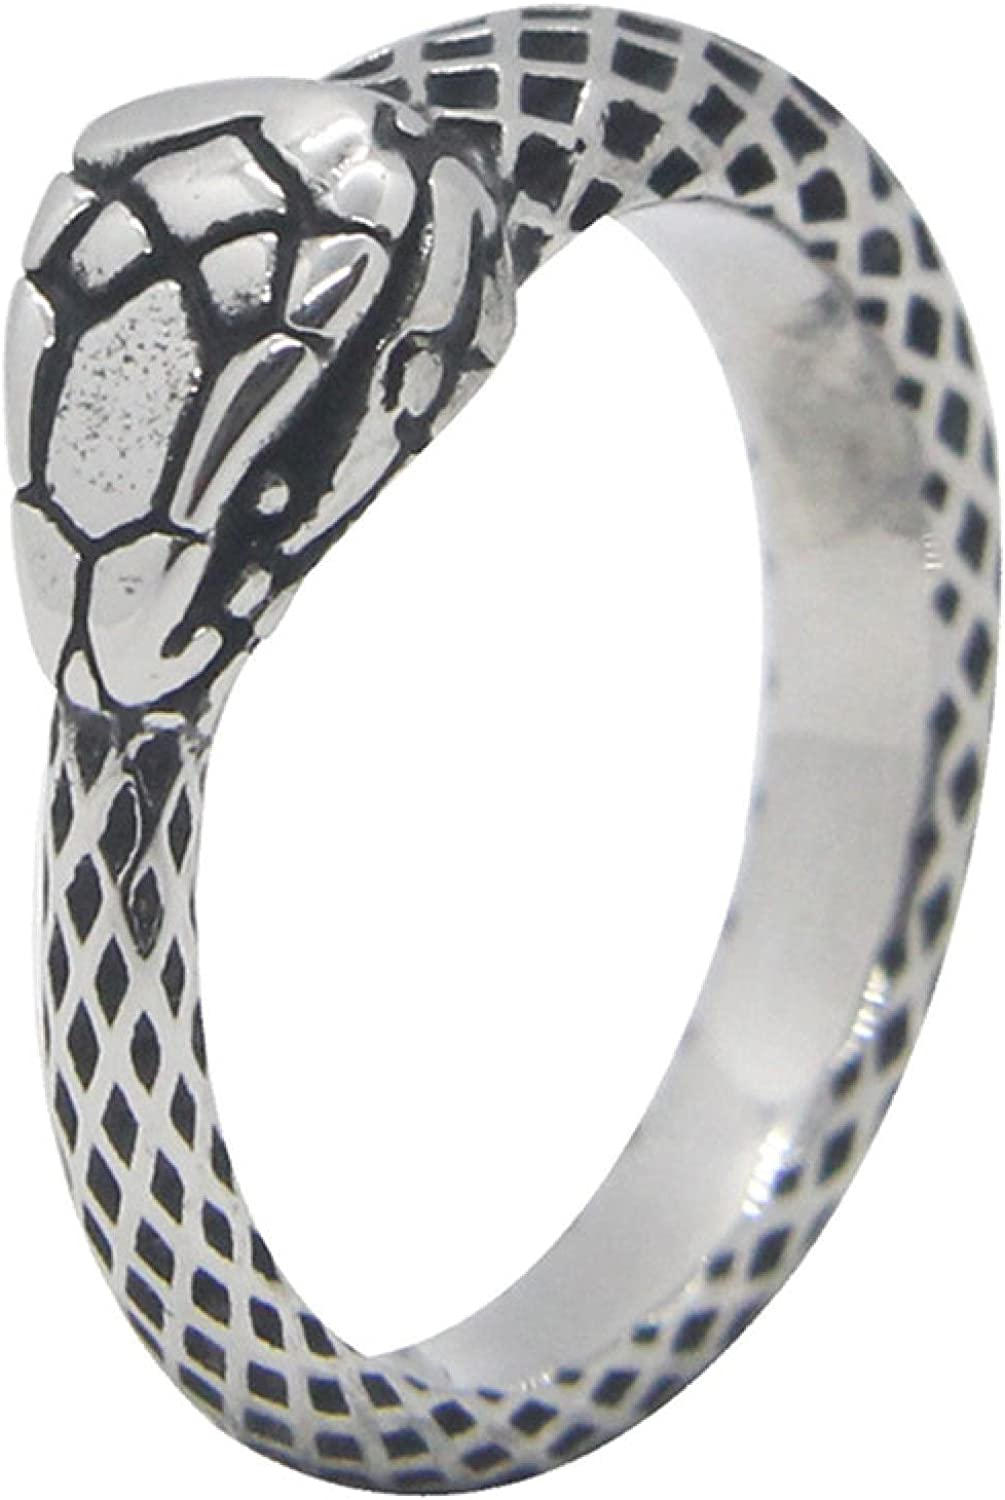 Snake Ring 316L Stainless We OFFer at cheap prices Steel Serpent Jewelry Ranking TOP4 Spirit Cobra